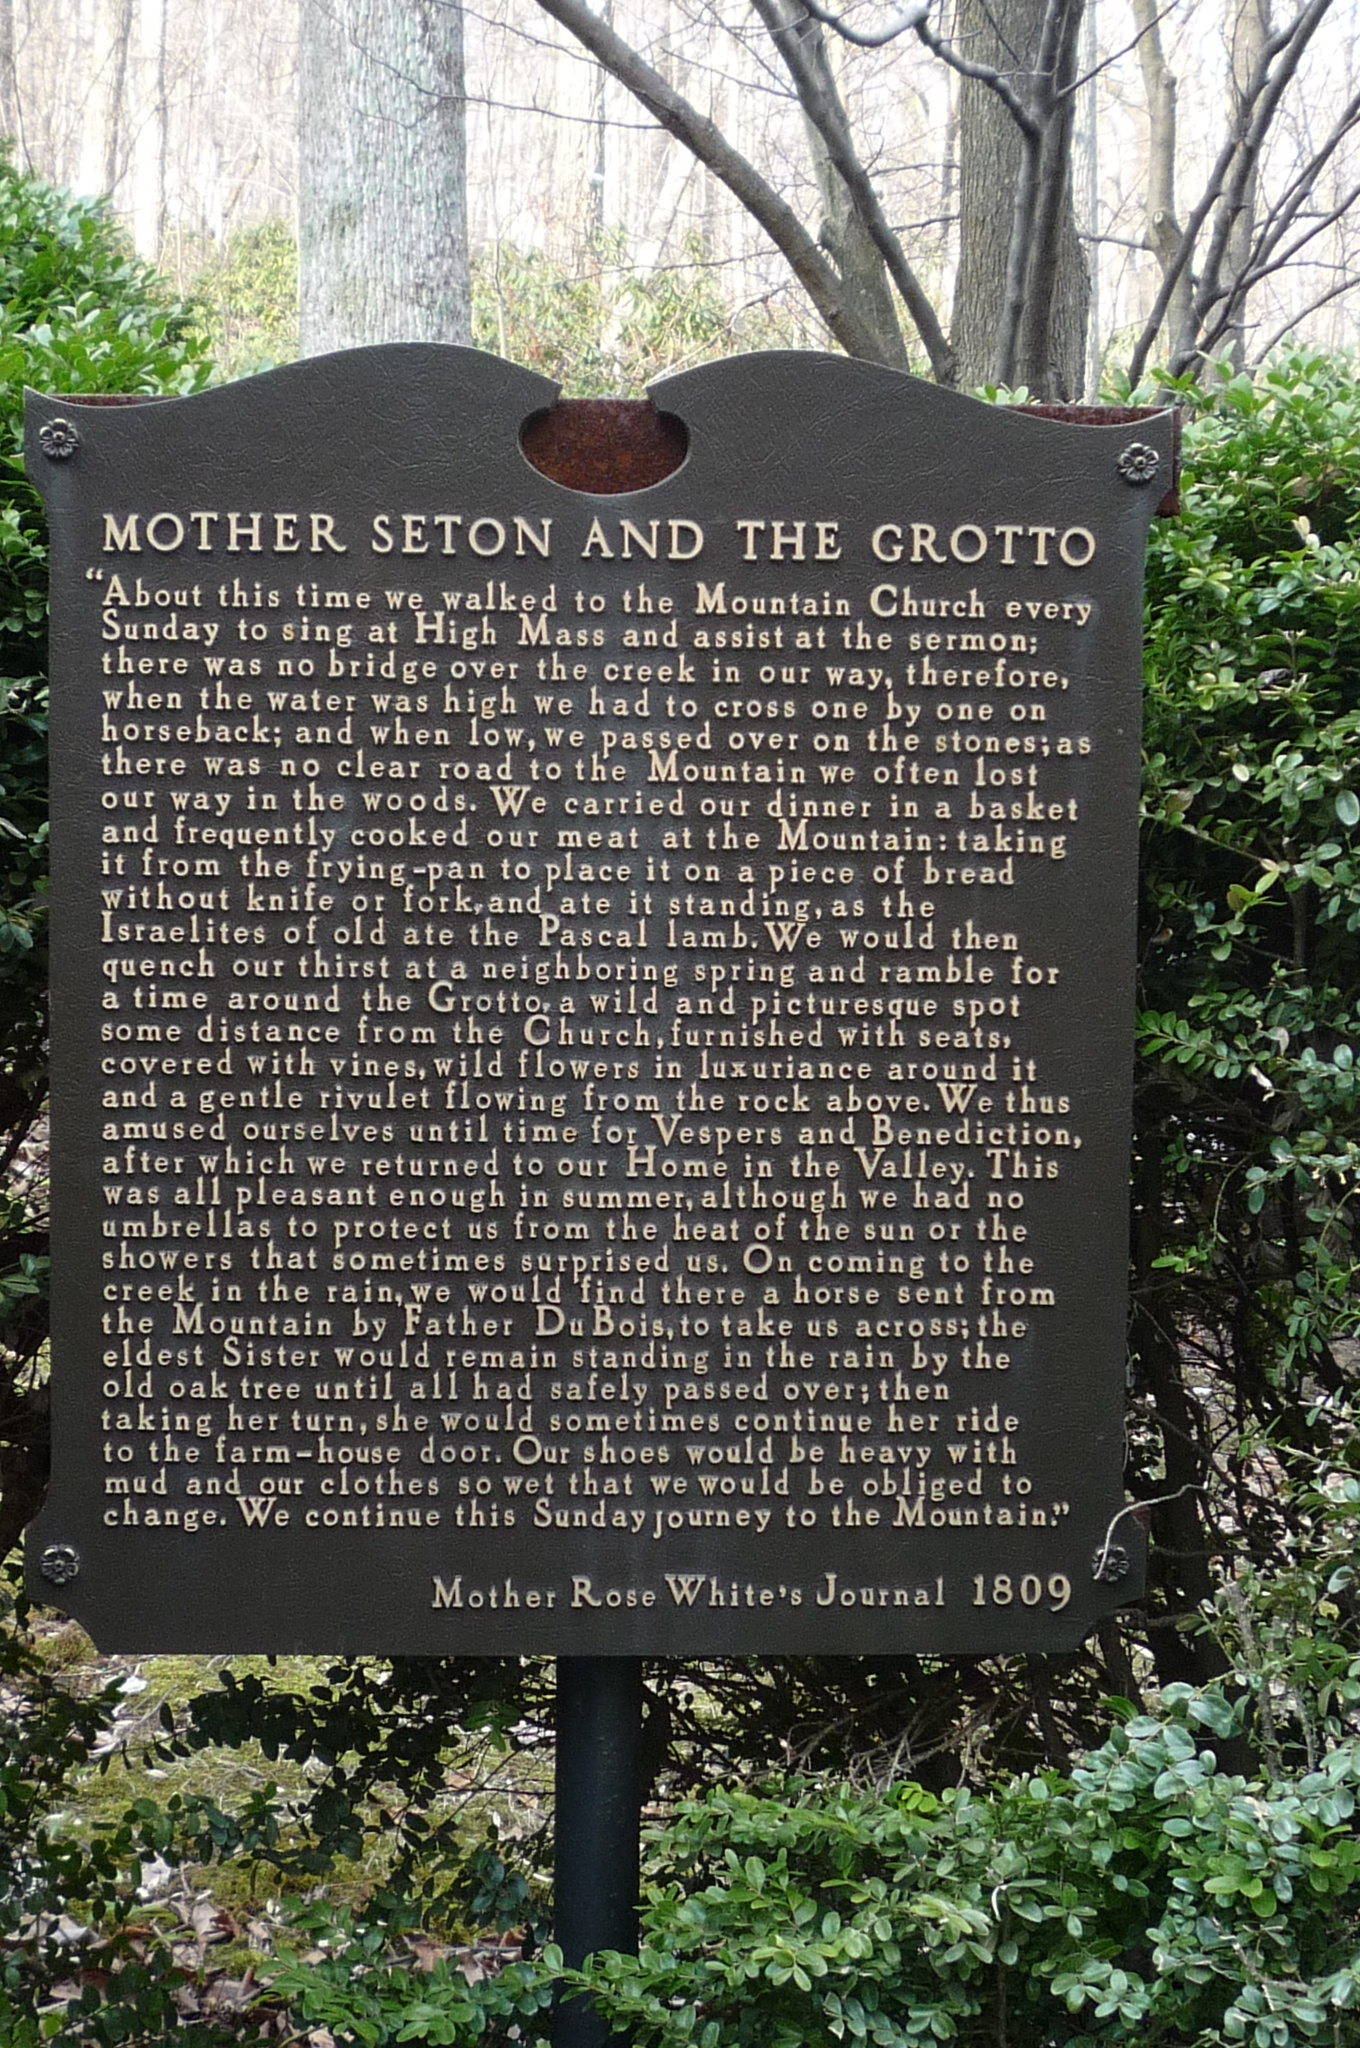 Mother Seton and the Grotto